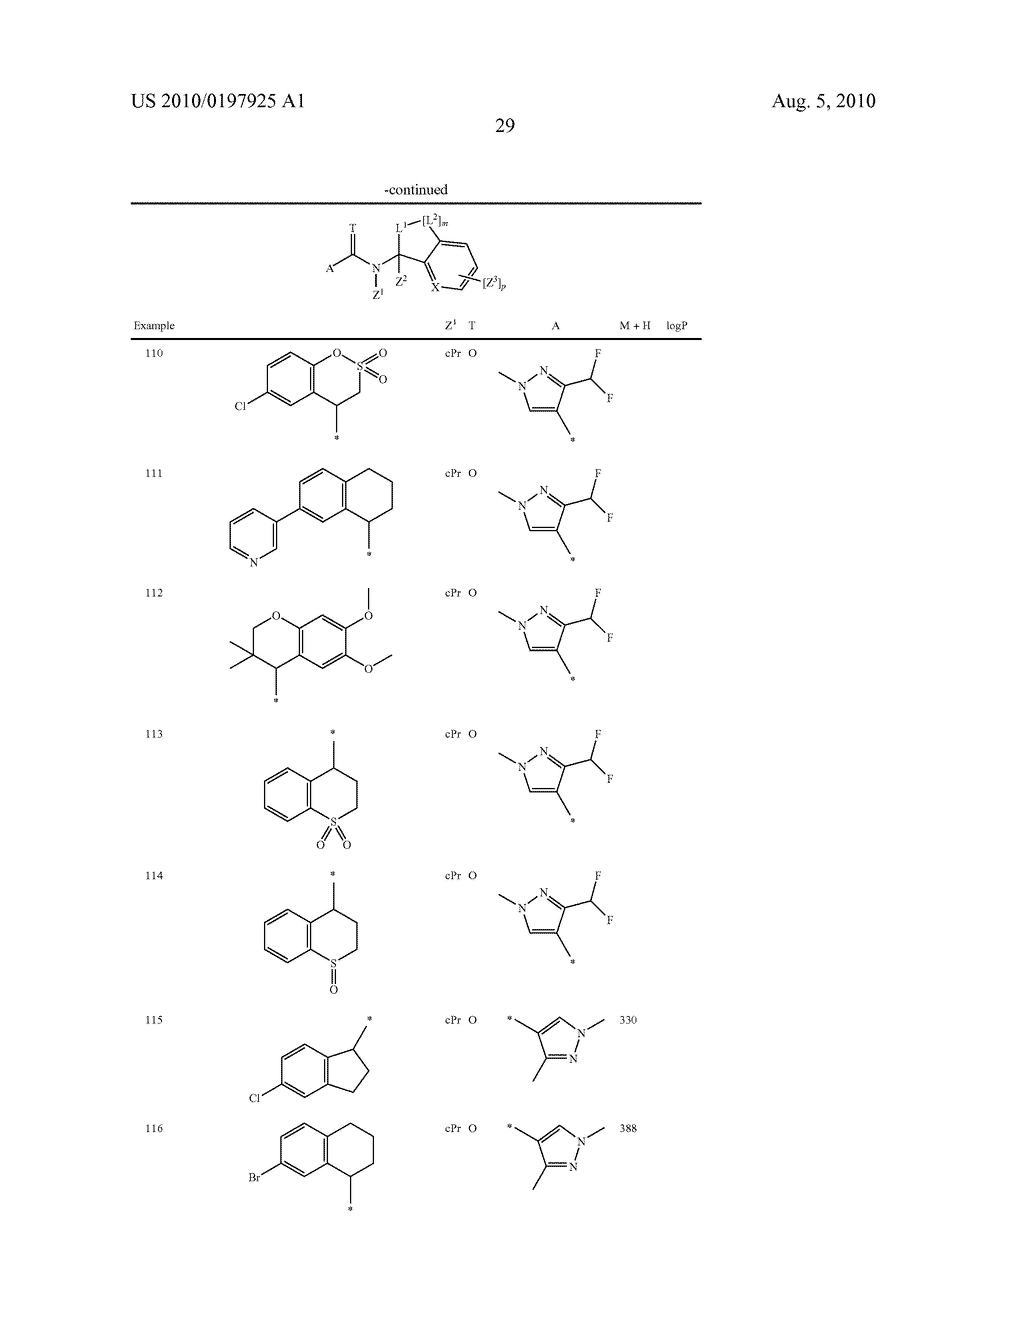 FUNGICIDE N-CYCLOALKYL-N-BICYCLIC-CARBOXAMIDE DERIVATIVES - diagram, schematic, and image 30